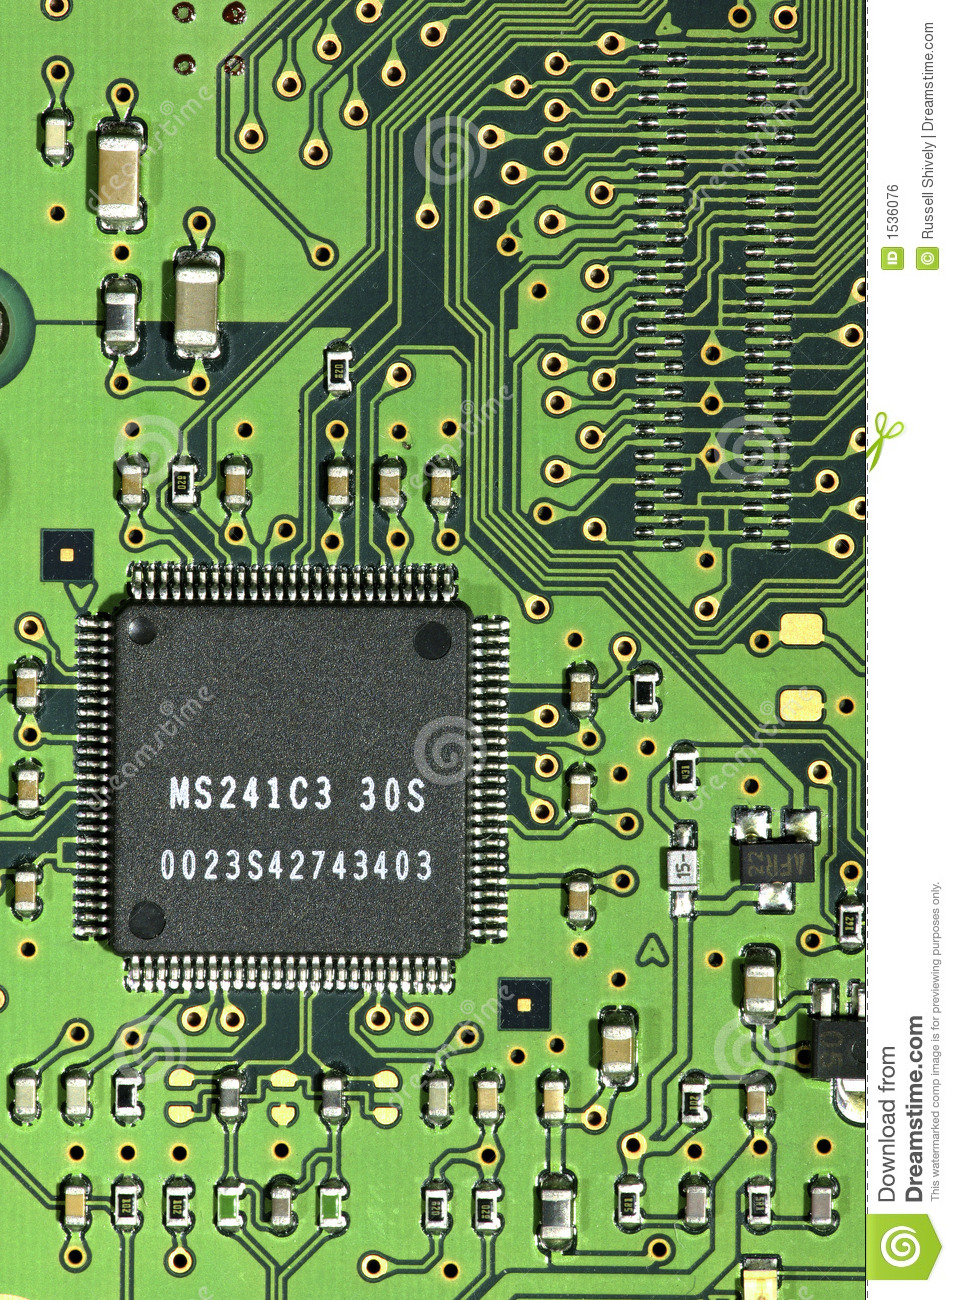 Printed Circuit Board Royalty Free Stock Images Image 30611849